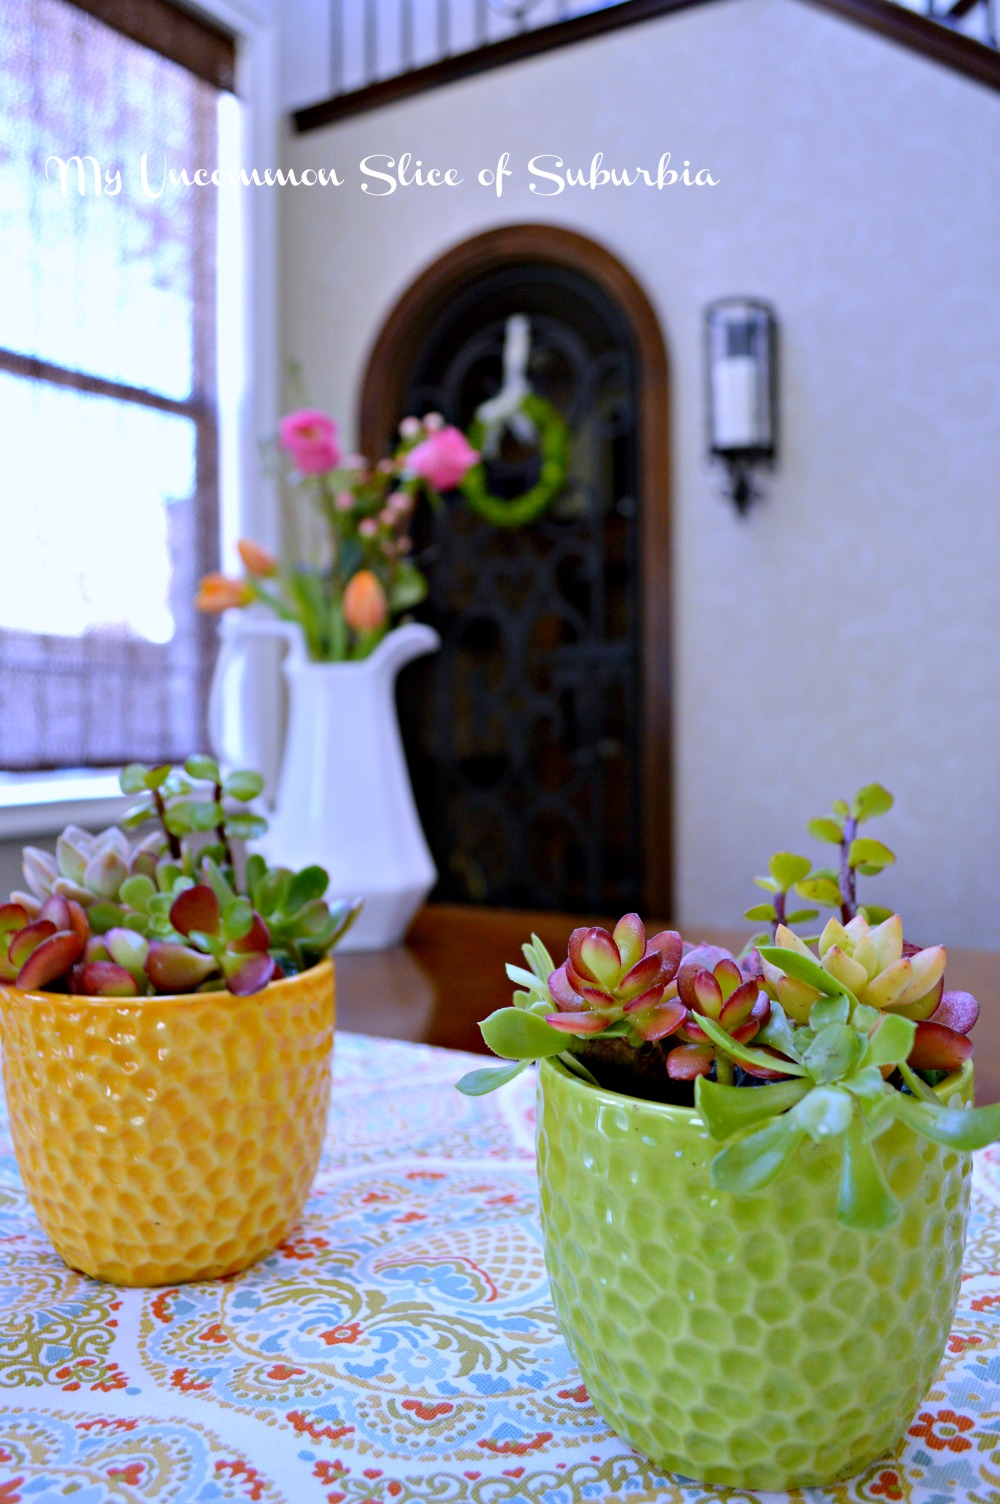 How to grow succulents indoors my uncommon slice of suburbia - Best succulents for indoors ...